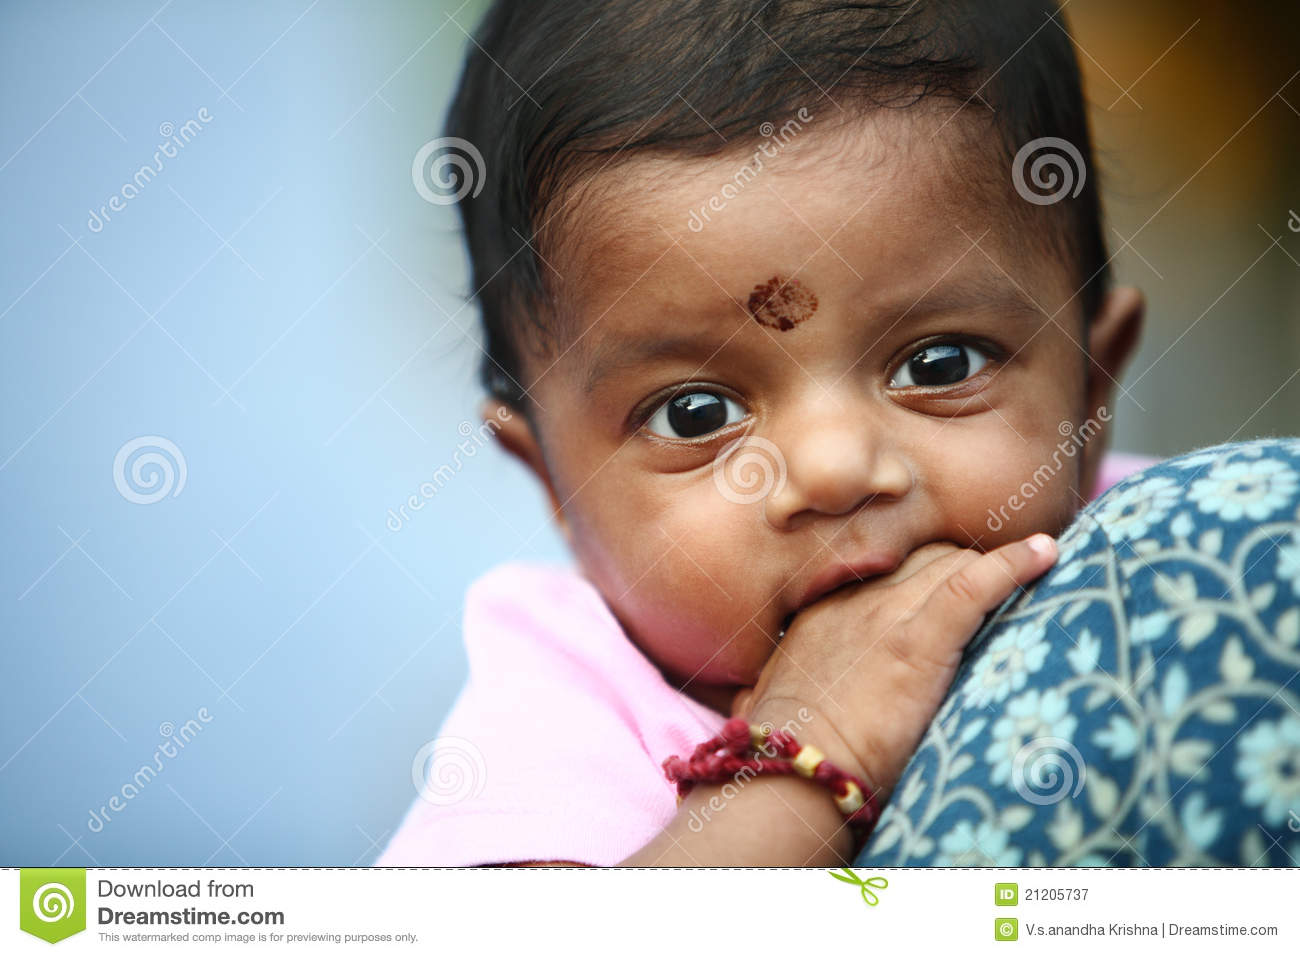 Cute Indian baby stock image. Image - 113.0KB